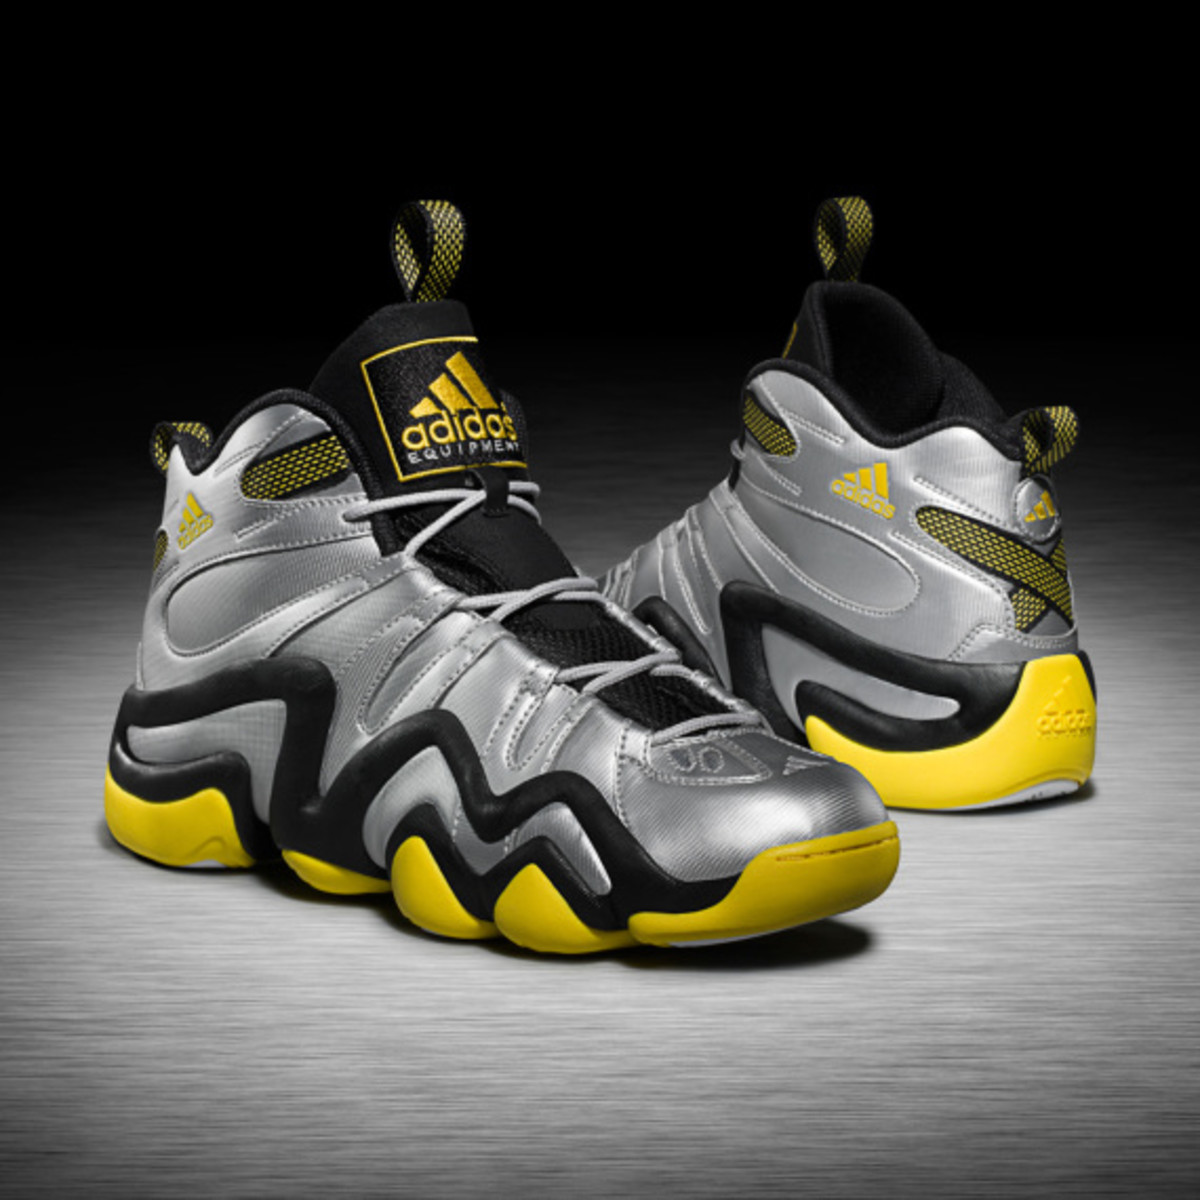 adidas-basketball-broadway-express-collection-05